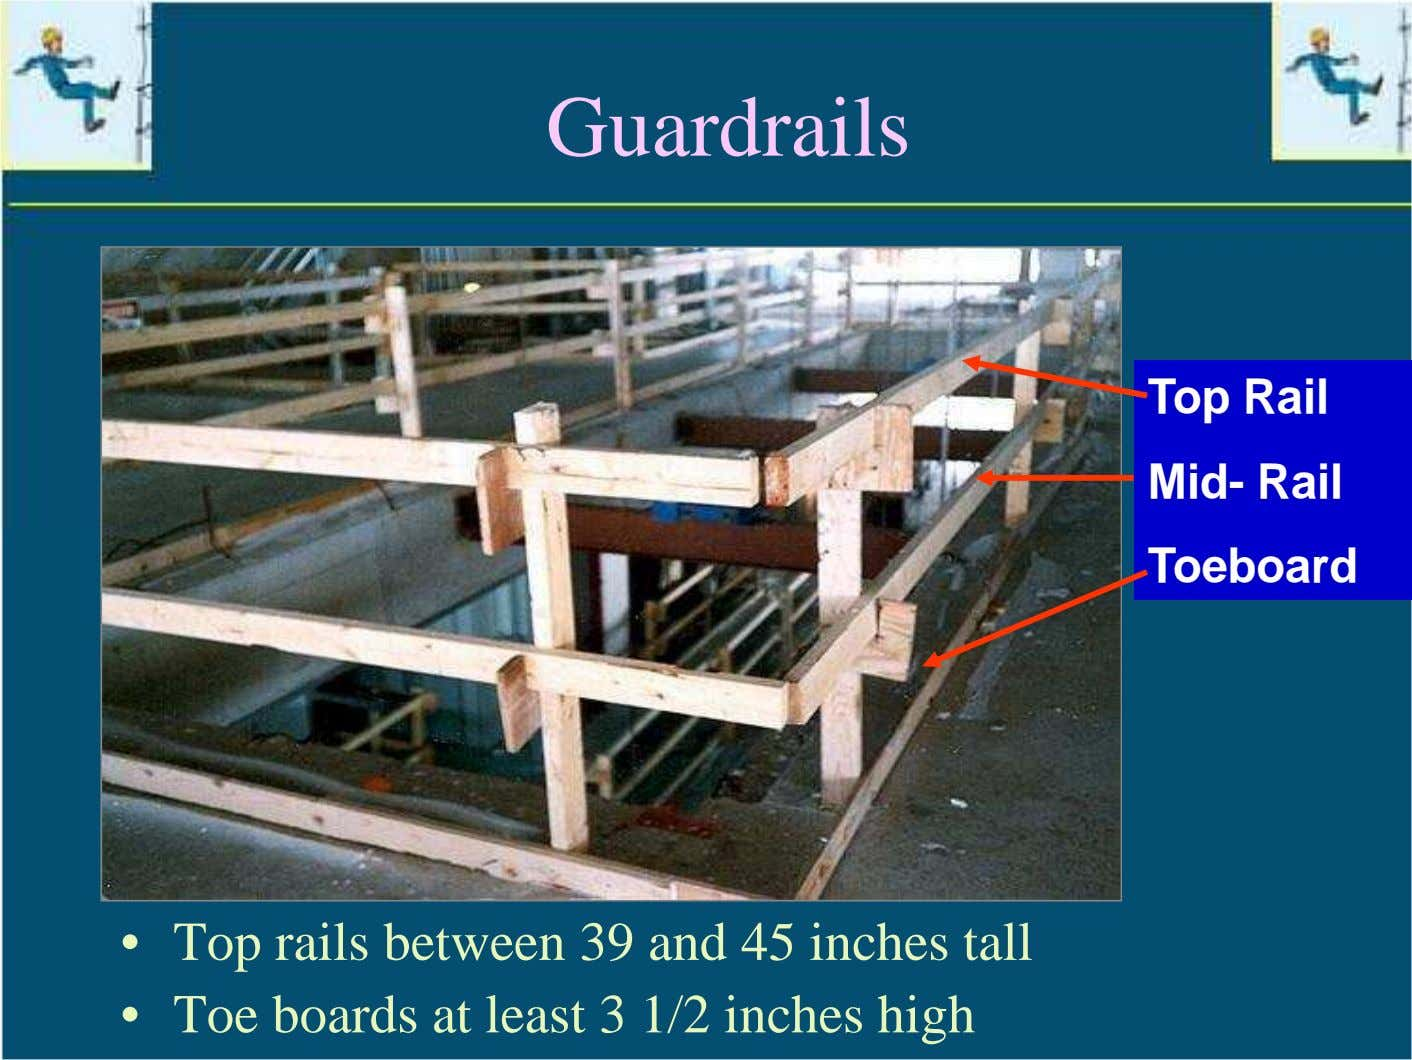 Guardrails Top Rail Mid- Rail Toeboard • Top rails between 39 and 45 inches tall